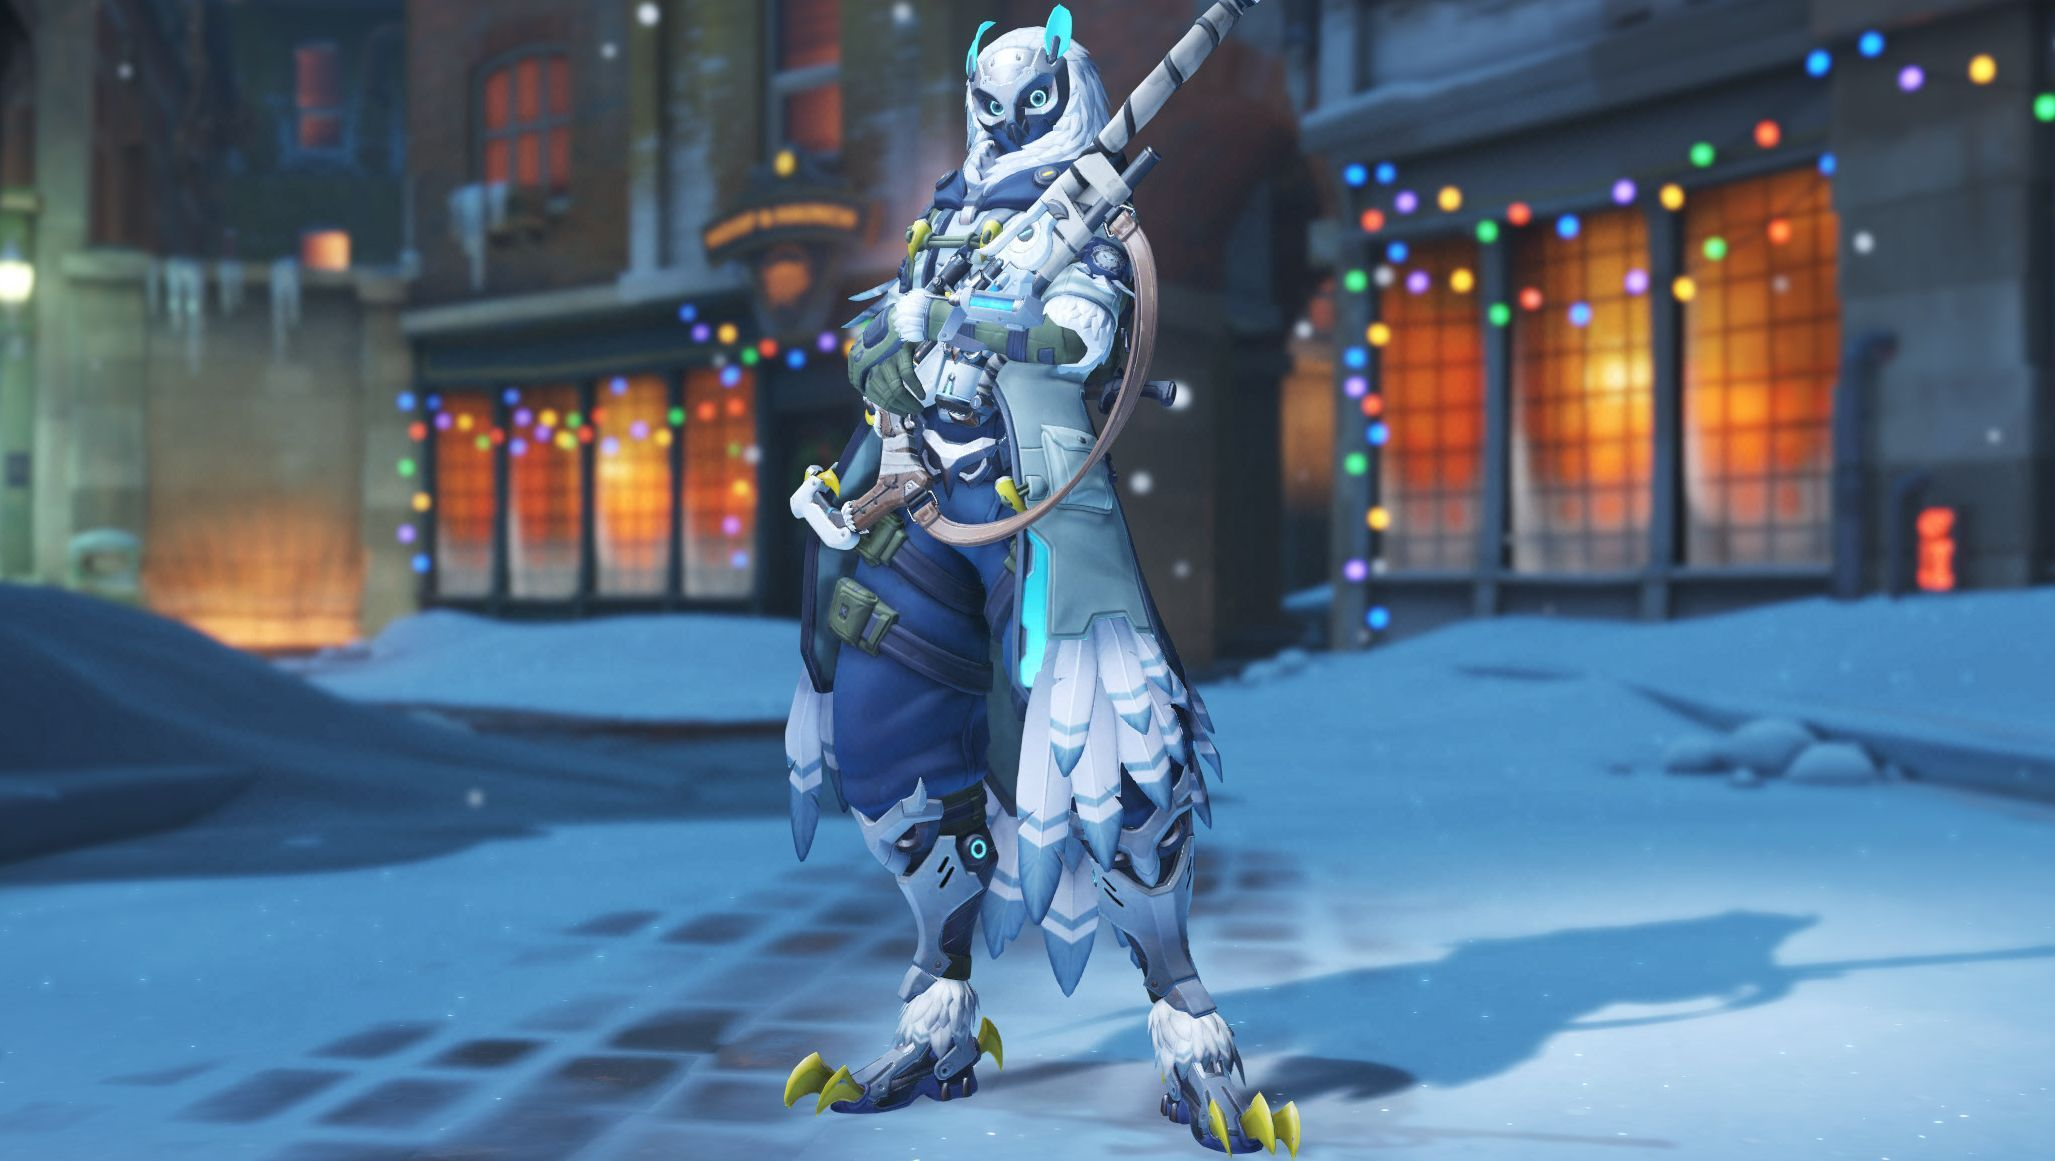 Overwatch Christmas Skins 2021 New Overwatch Christmas Update Adds Skins Mode As Winter Wonderland Event Goes Live Gamespot